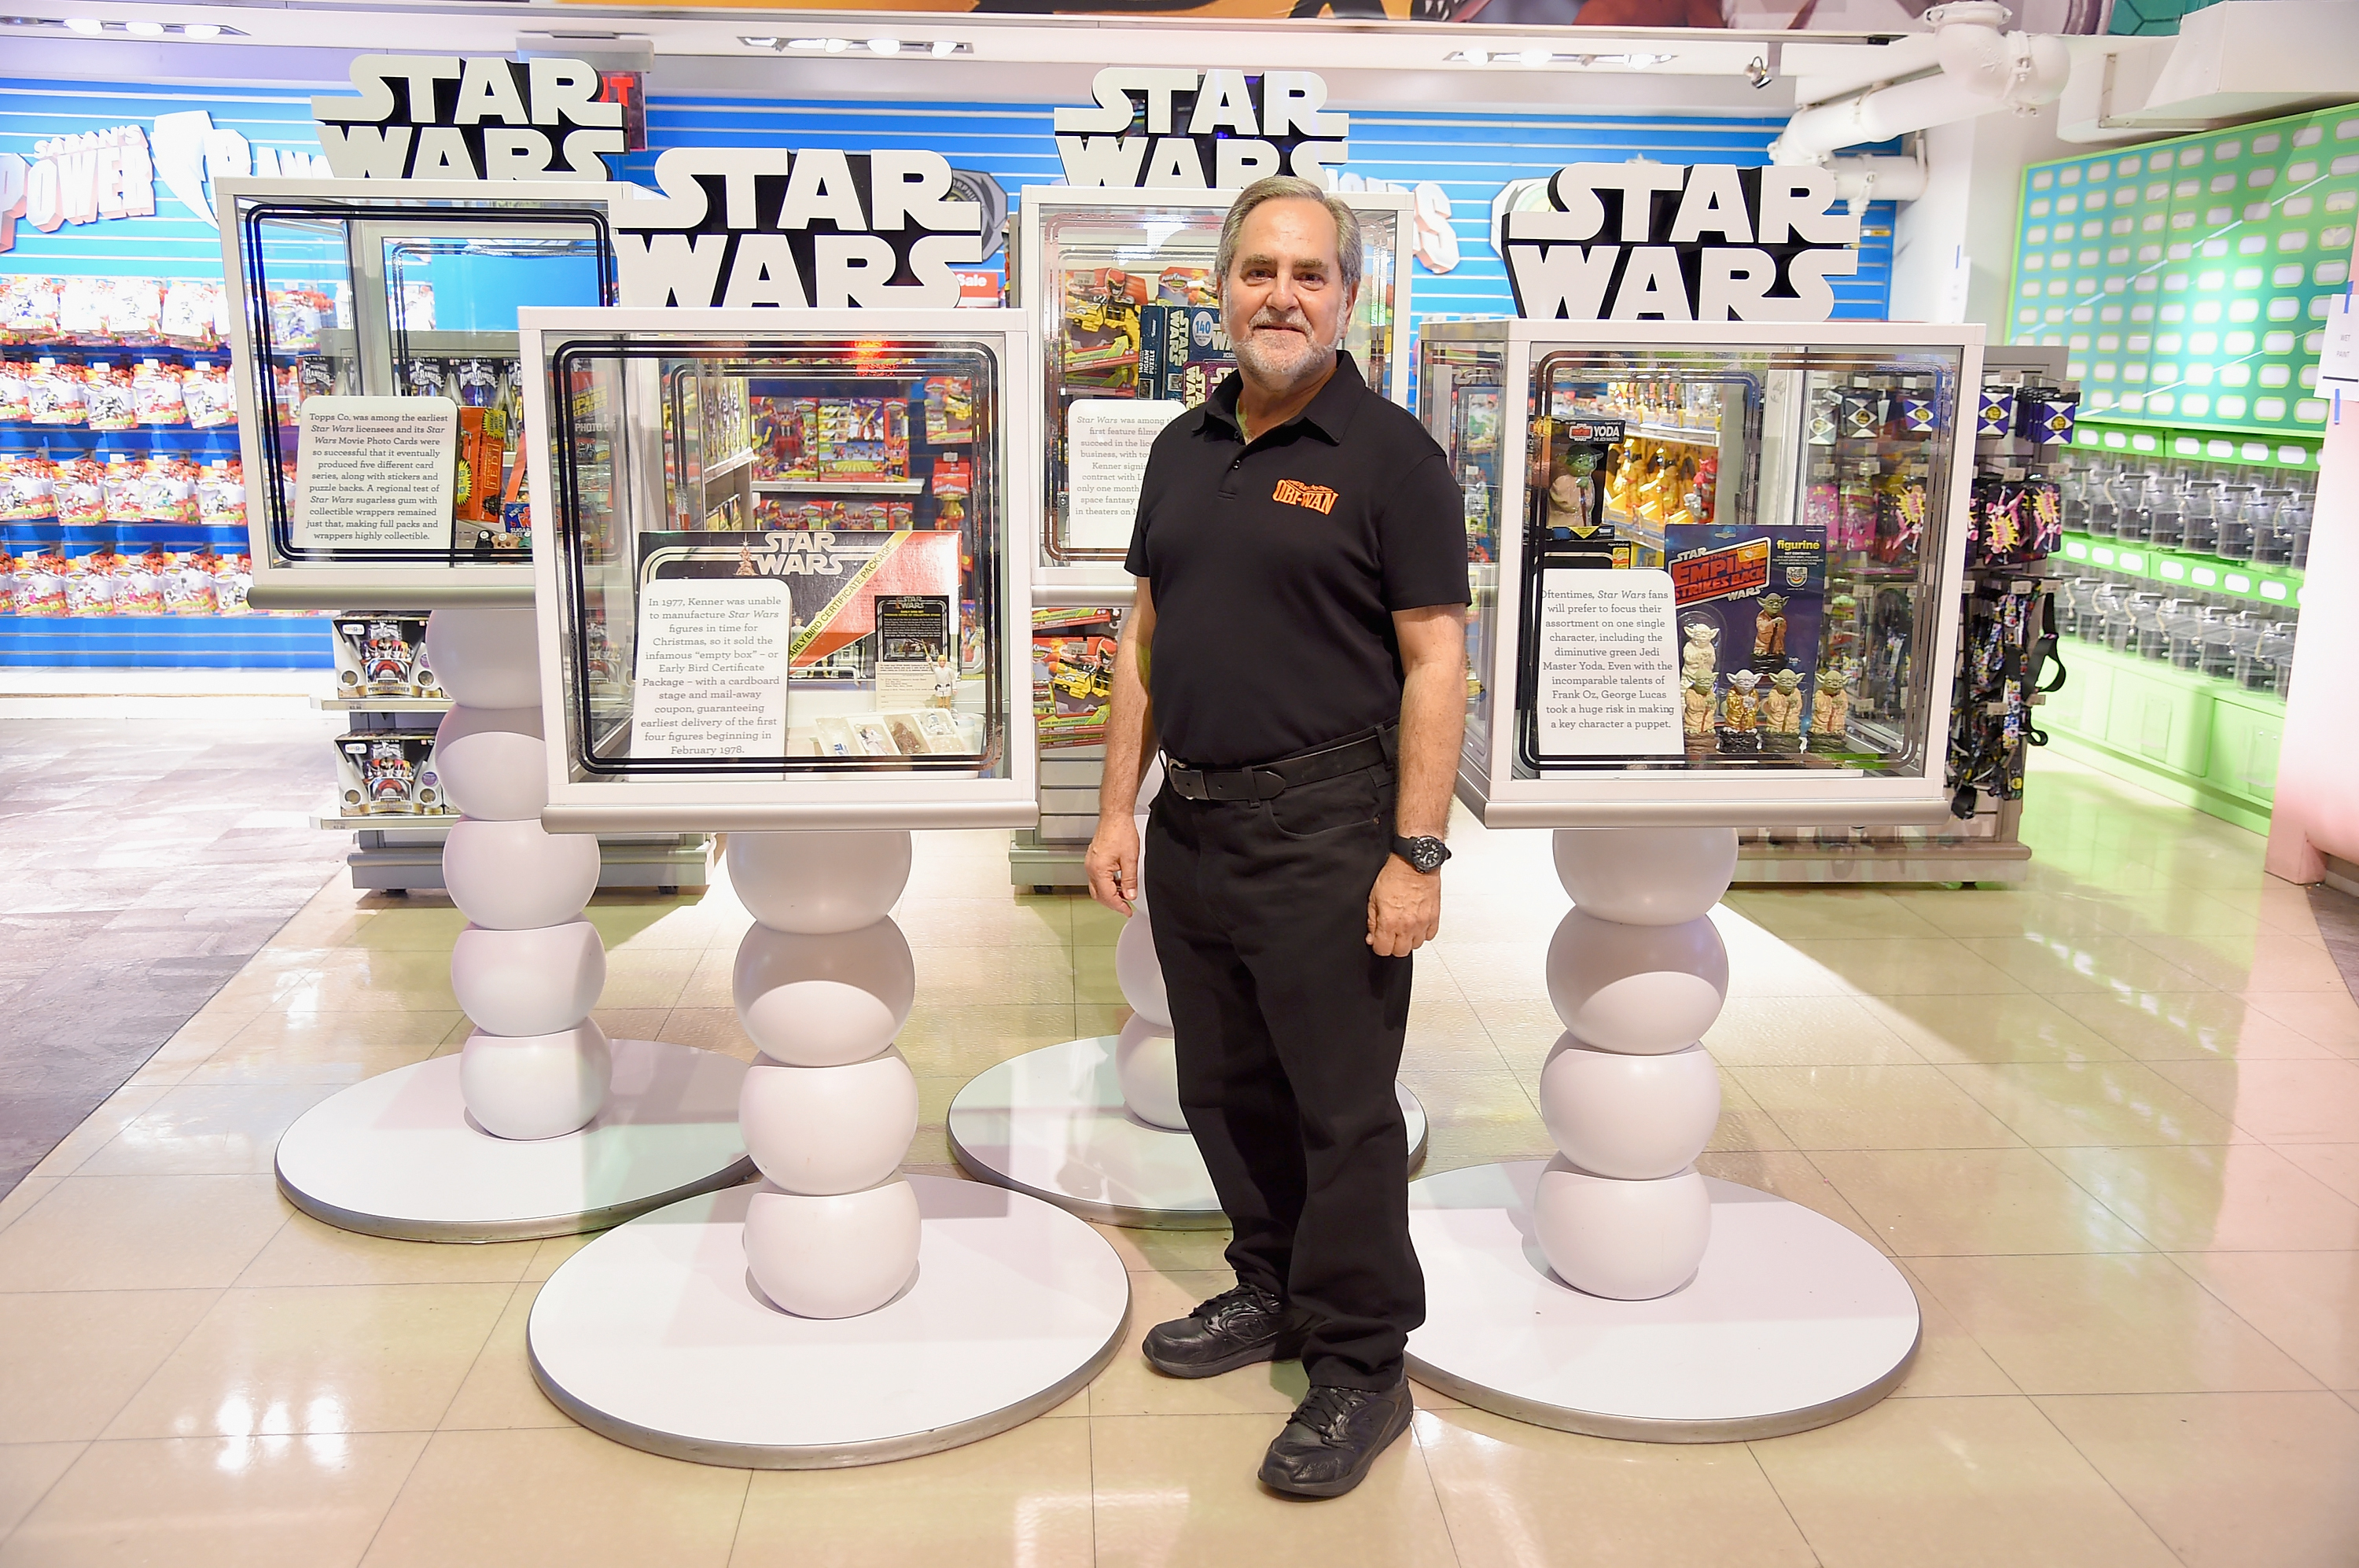 NEW YORK, NY - SEPTEMBER 04:  Author Steve Sansweet attends Toys'R'Us Force Friday With Out-Of-This-Galaxy Midnight Events on September 4, 2015 in New York City.  (Photo by Michael Loccisano/Getty Images for Toys'R'Us)